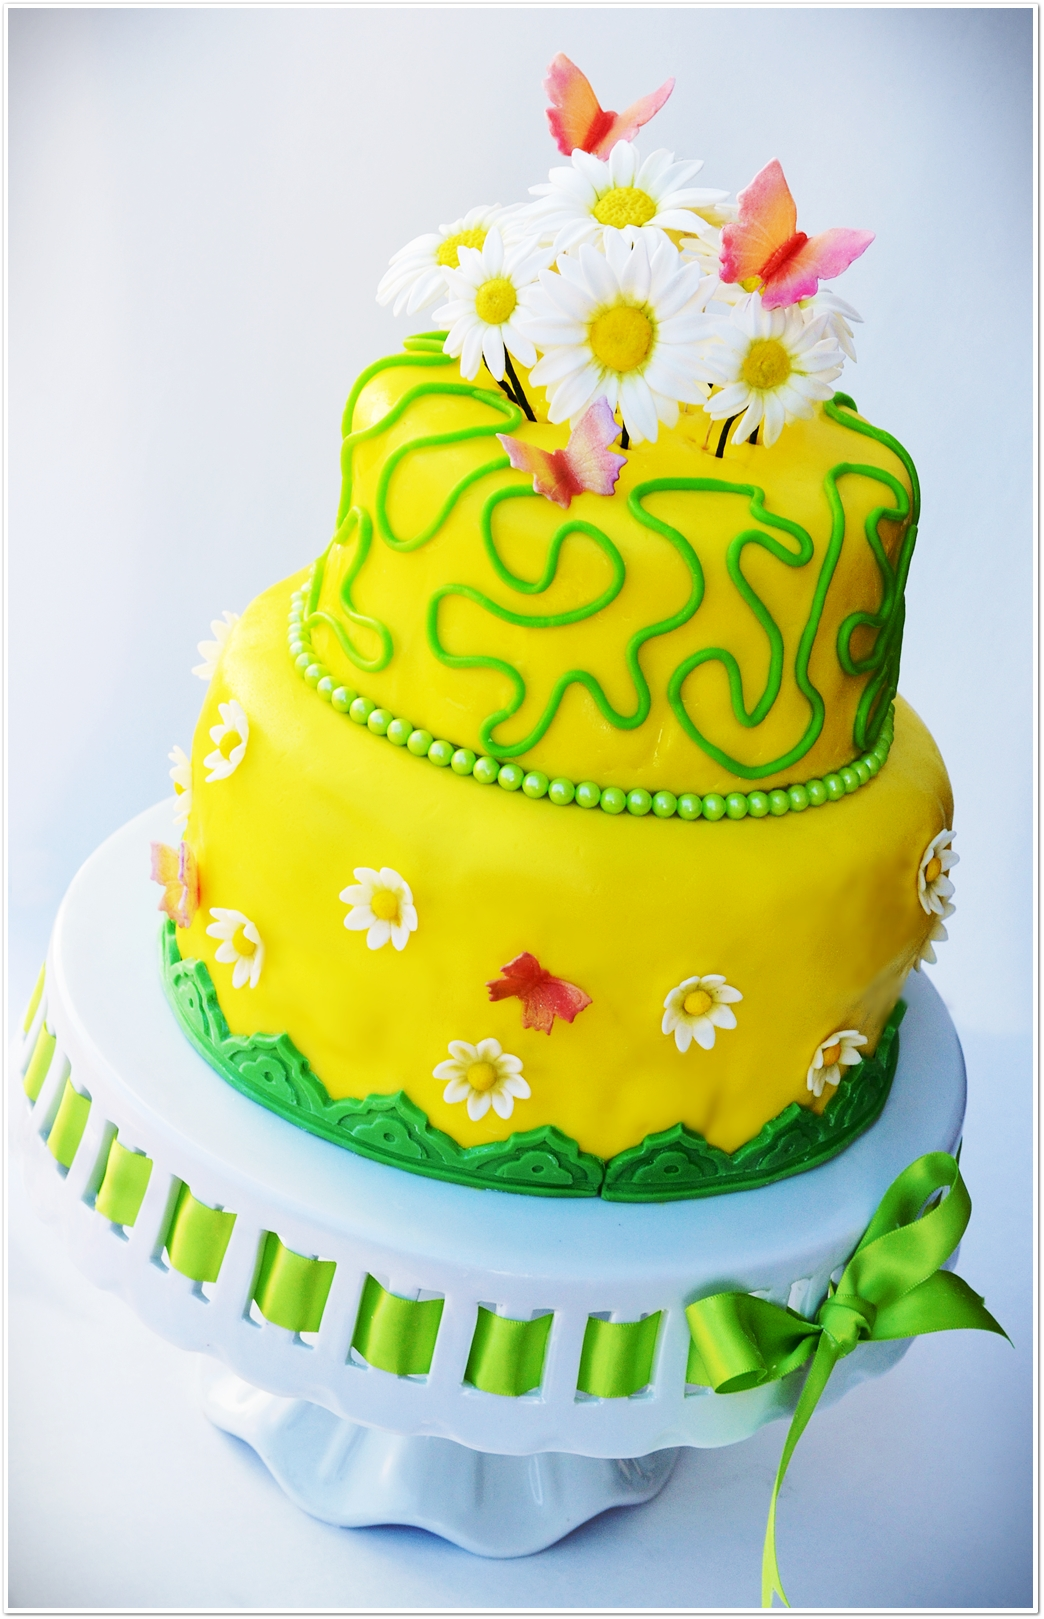 """Daisies Cake"" Recipe, Blogoversary and a Giveaway!!! http://leascooking.blogspot.com/2013/04/daisies-cake-recipe-blogoversary-and.html"